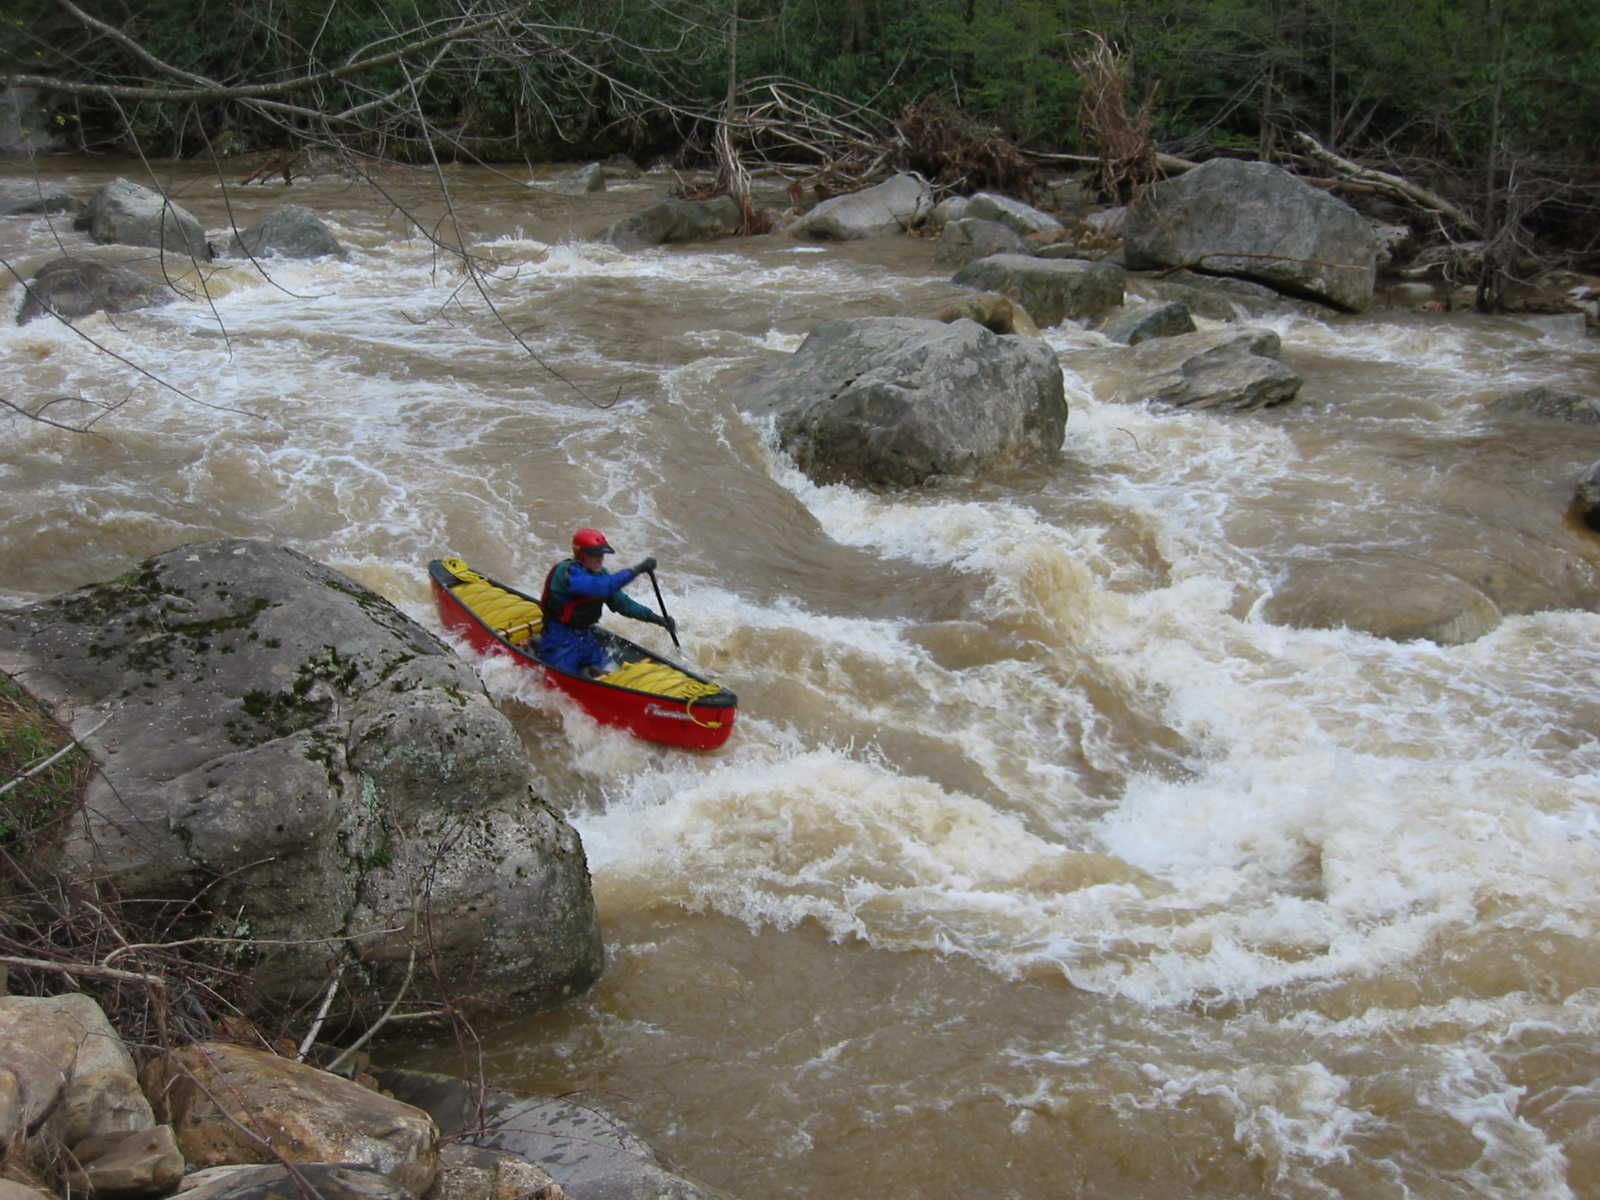 Scott Gravatt trying to avoid main hole in the big South Fork rapid (Photo by Lou Campagna - 4/26/04)